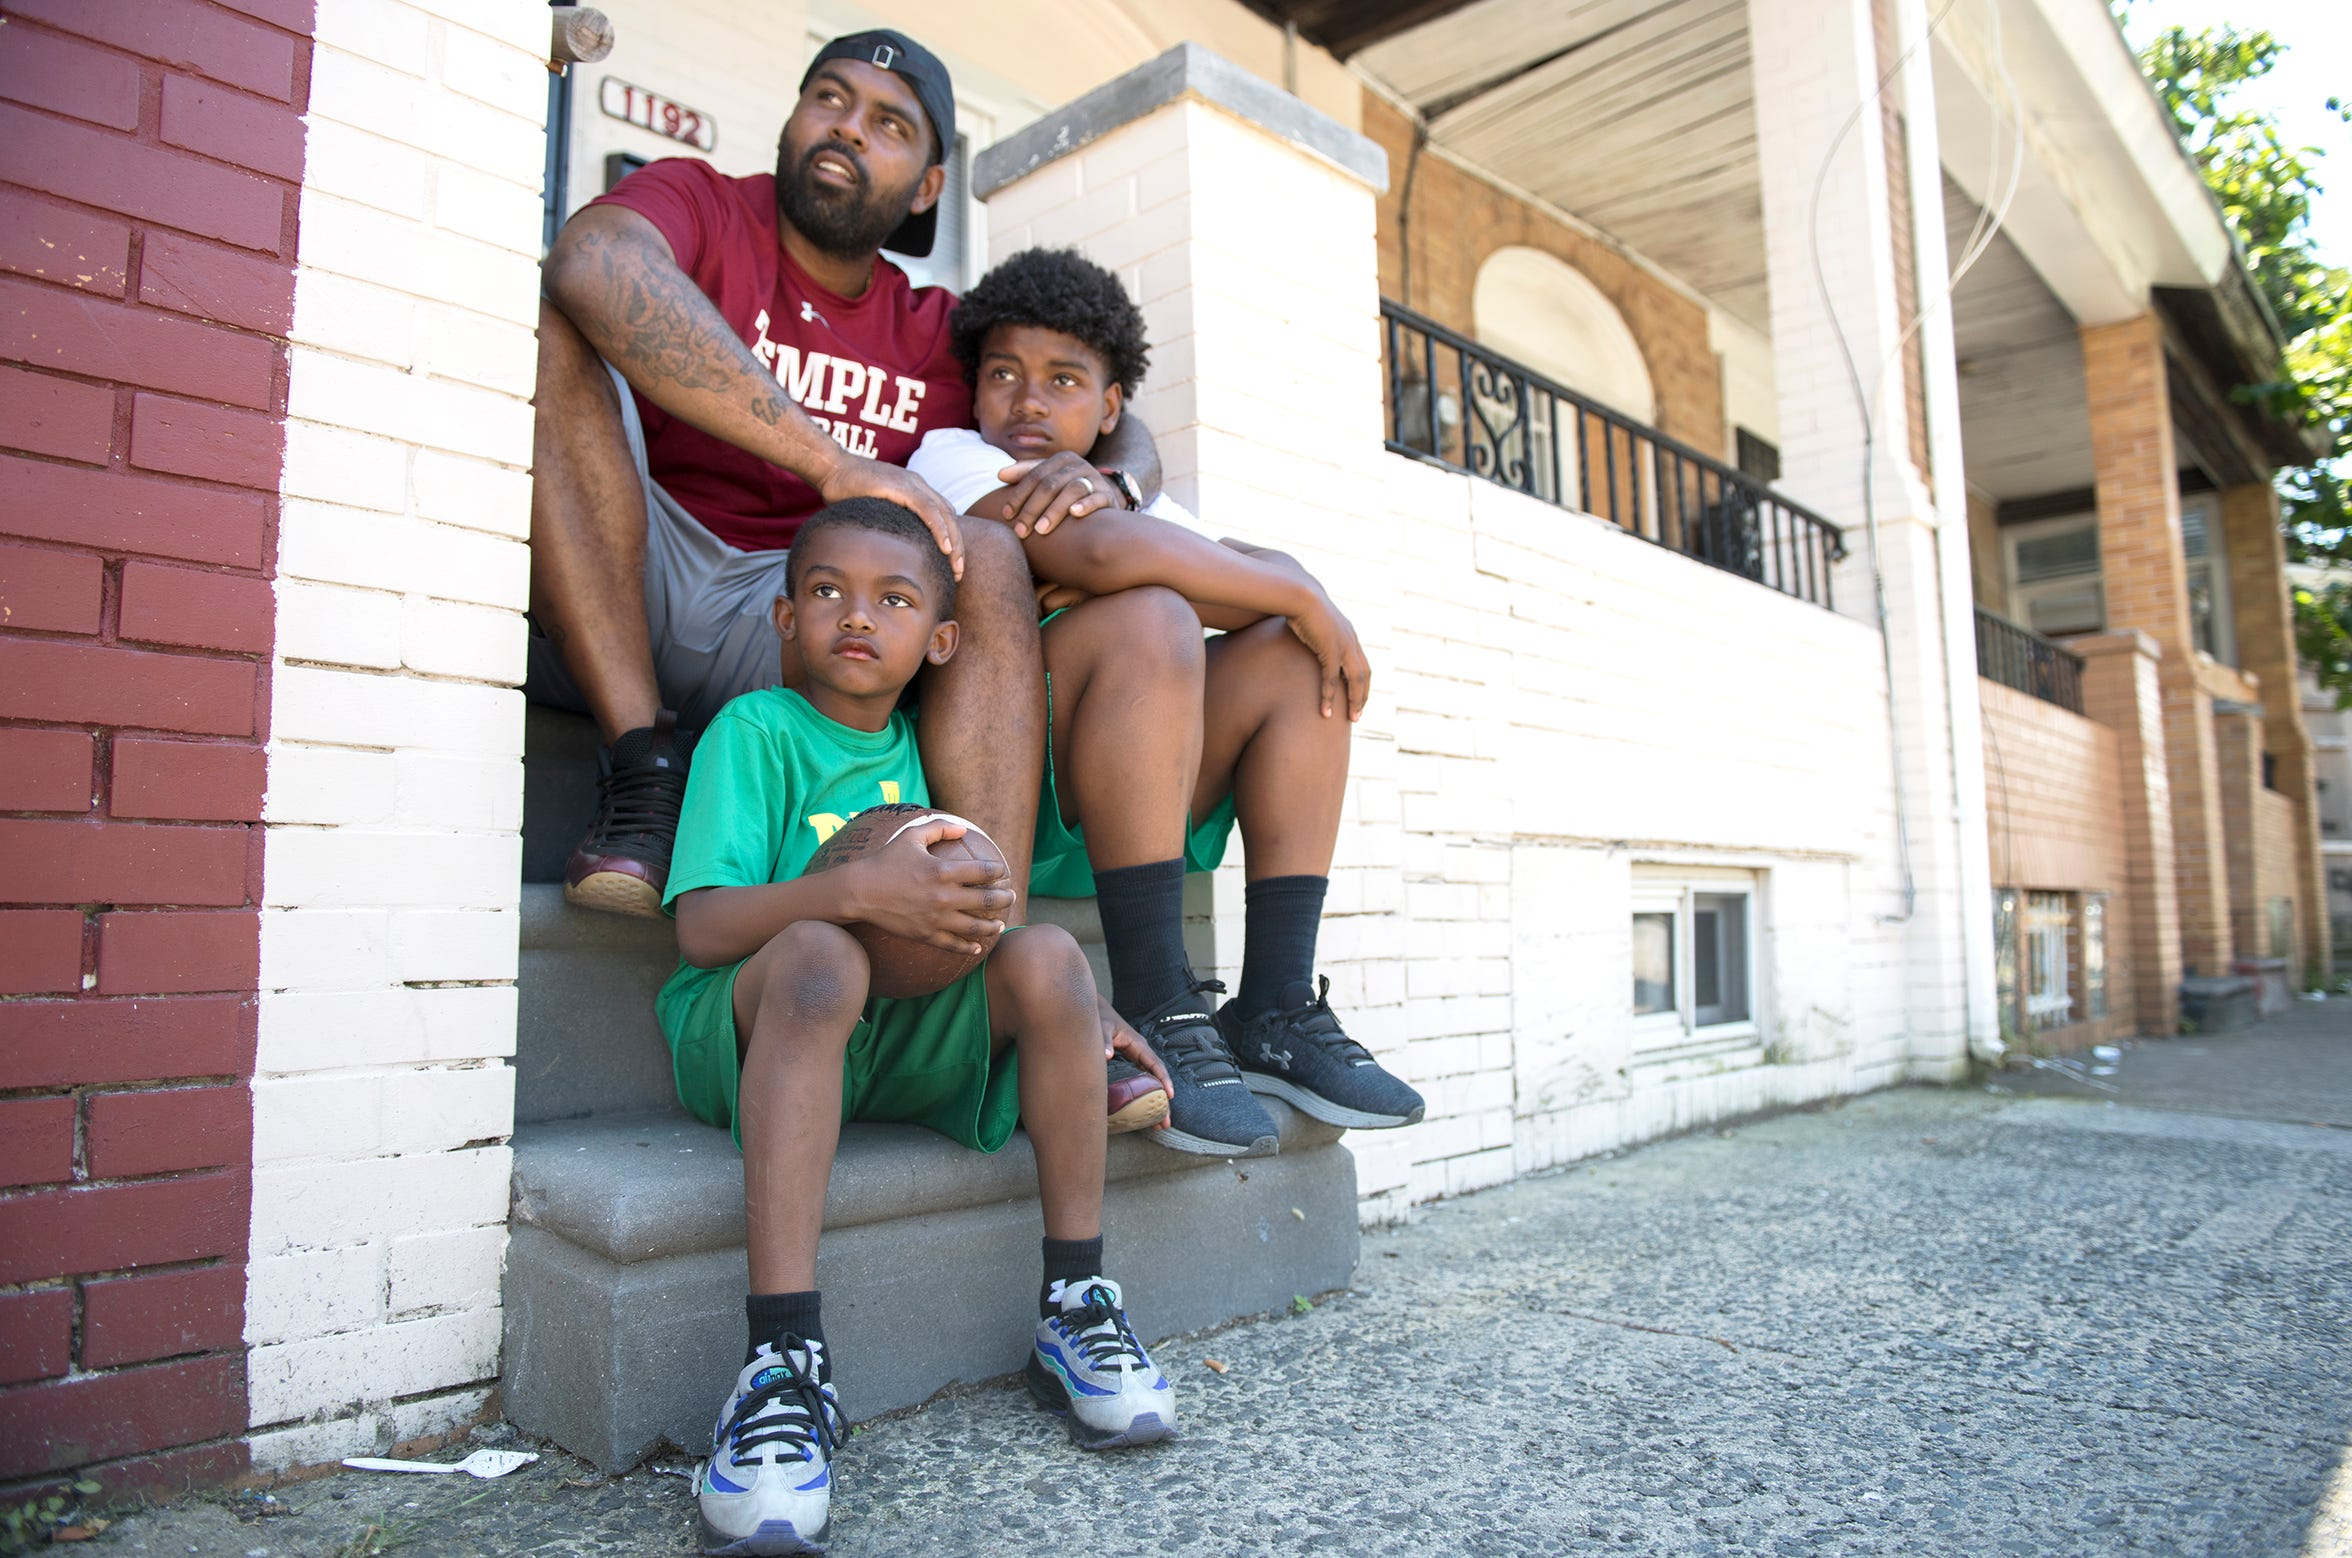 Fran Brown, top, a Camden native who became one of the best college football recruiters in the country and is now the co-defensive coordinator and cornerbacks coach at Temple University, sits with his sons Brayden, 7, left, and Frannie, 14, right, as they visit the home on Morton Street in Camden where Brown once lived.